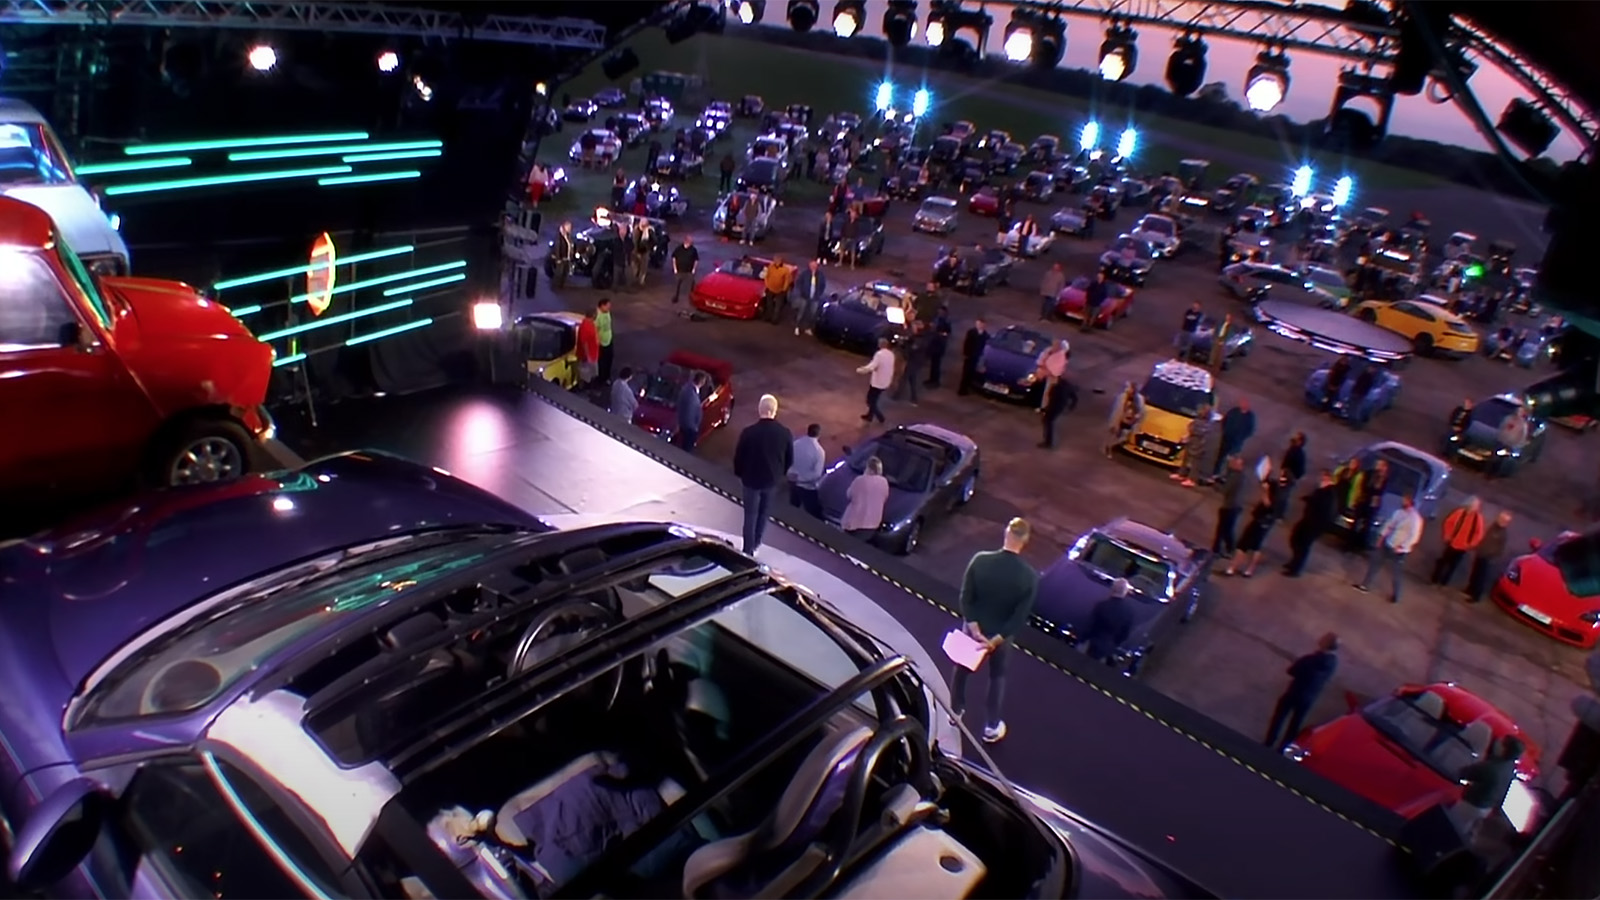 Top gear drive in audience